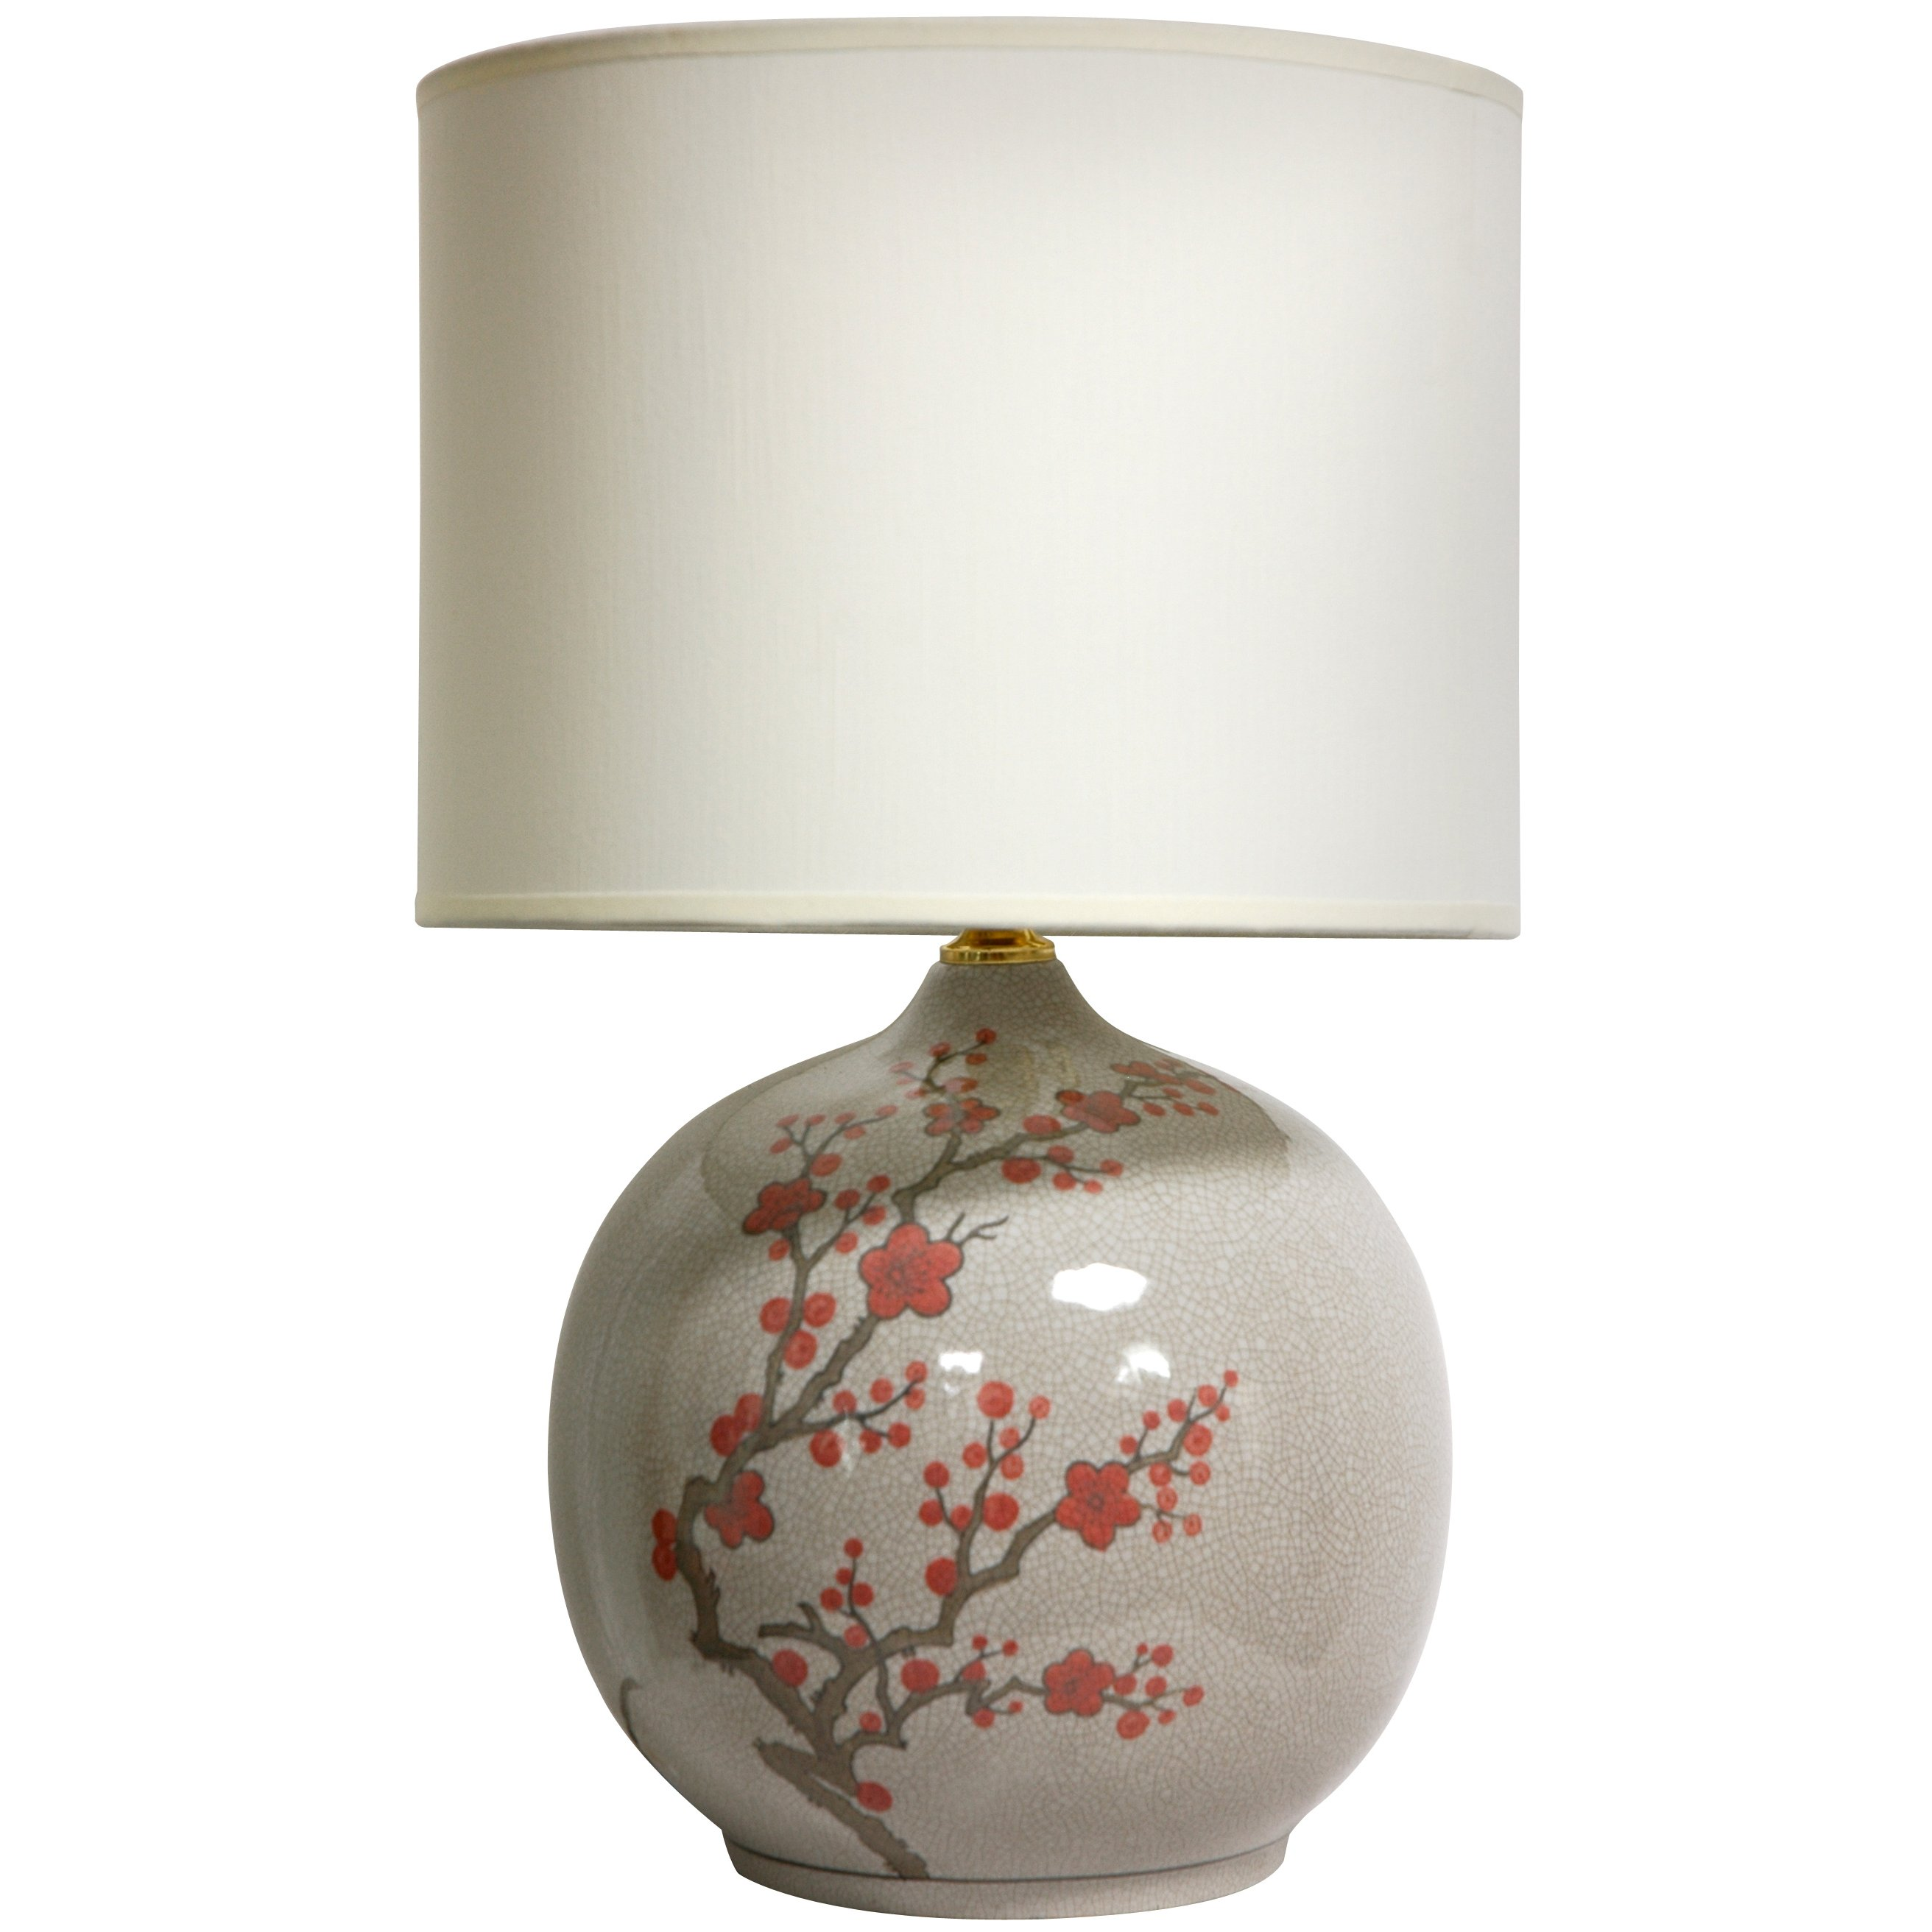 Cherry Blossom Table Lamps Buy 20 Quot Cherry Blossom Vase Lamp Online Lmp Jco X6019